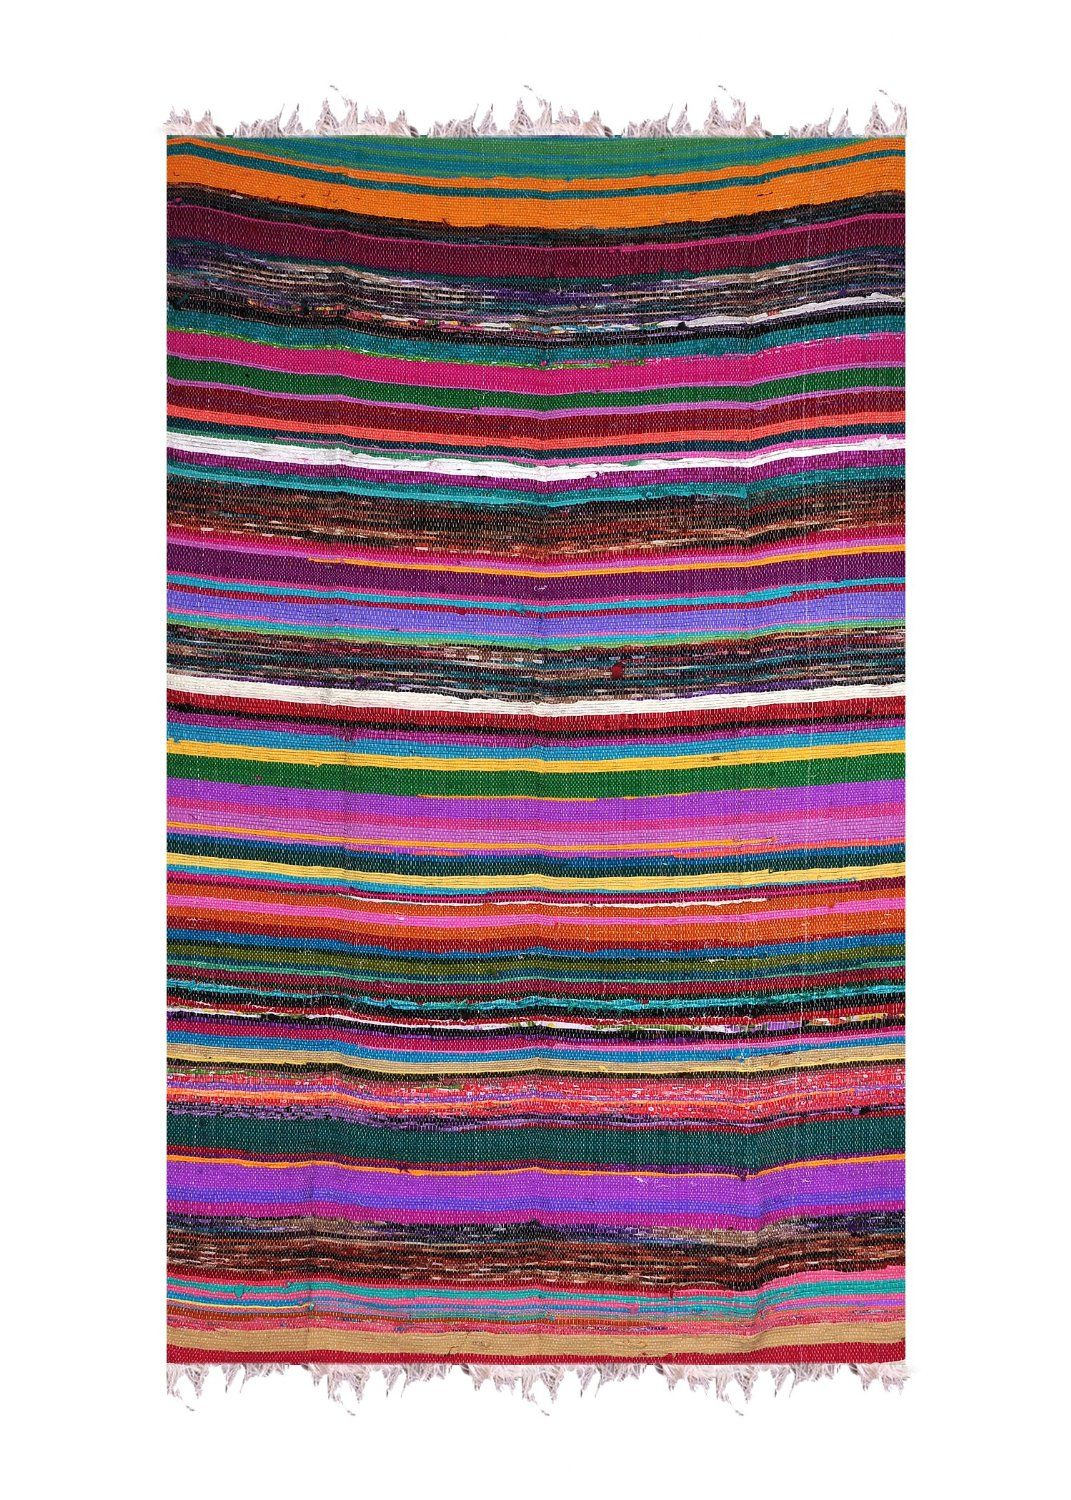 Rawyal Hand Woven Reversible Rug Rag Knotted Striped Multicolored Cotton Recycled Boho Hippy Shabby